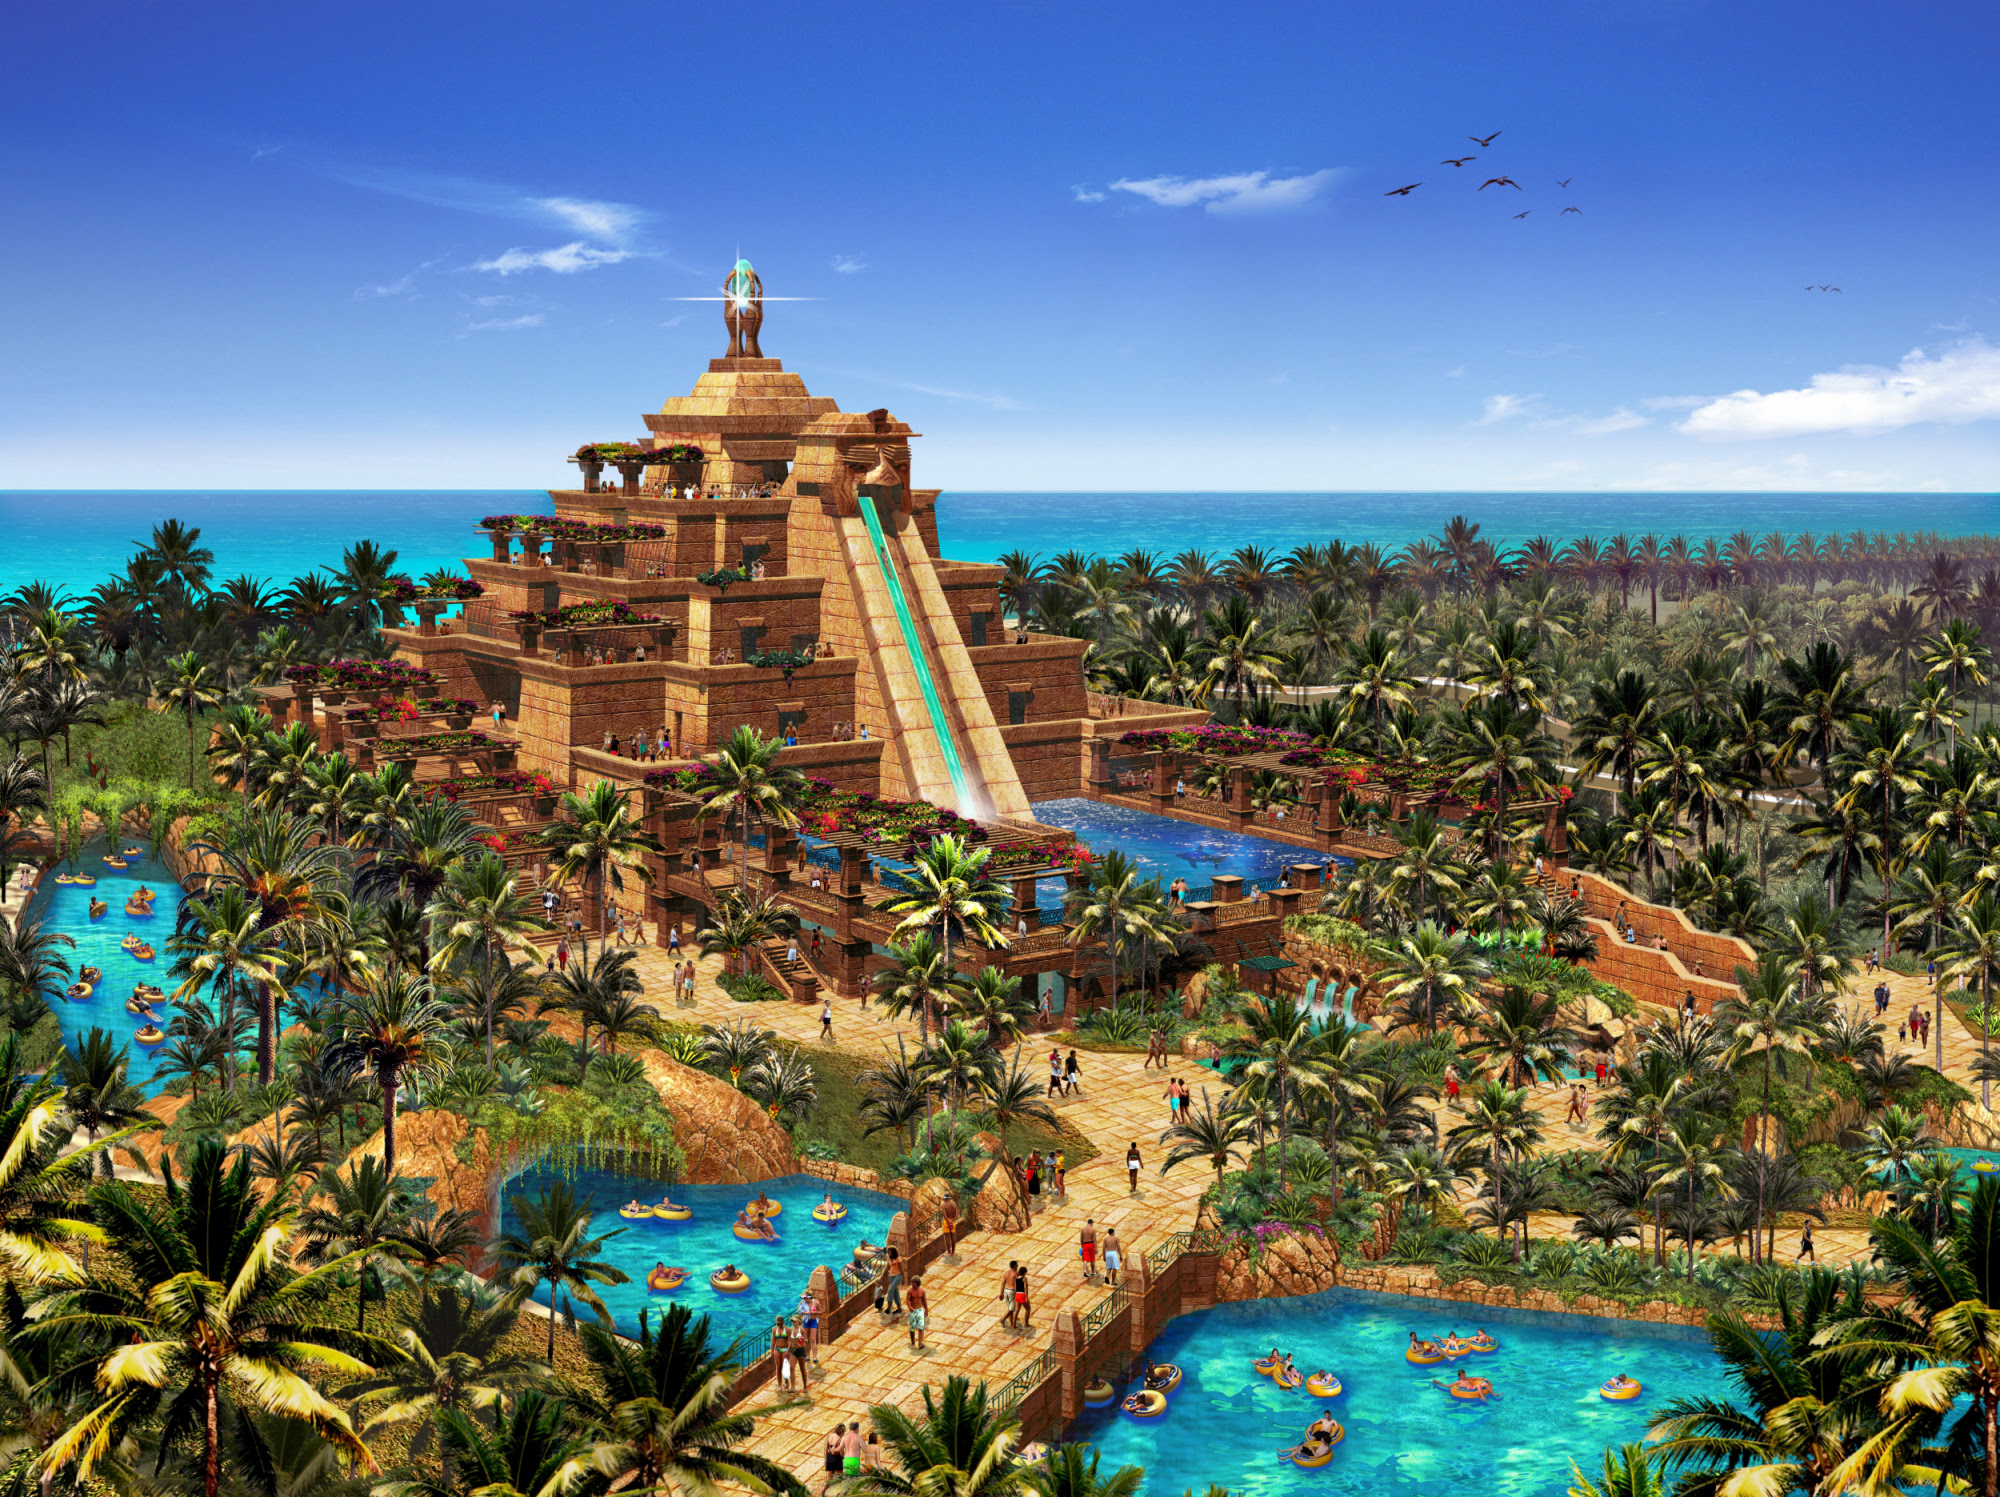 Enjoy and Relax on Atlantis Aquaventure Most Famous Water Park in Dubai